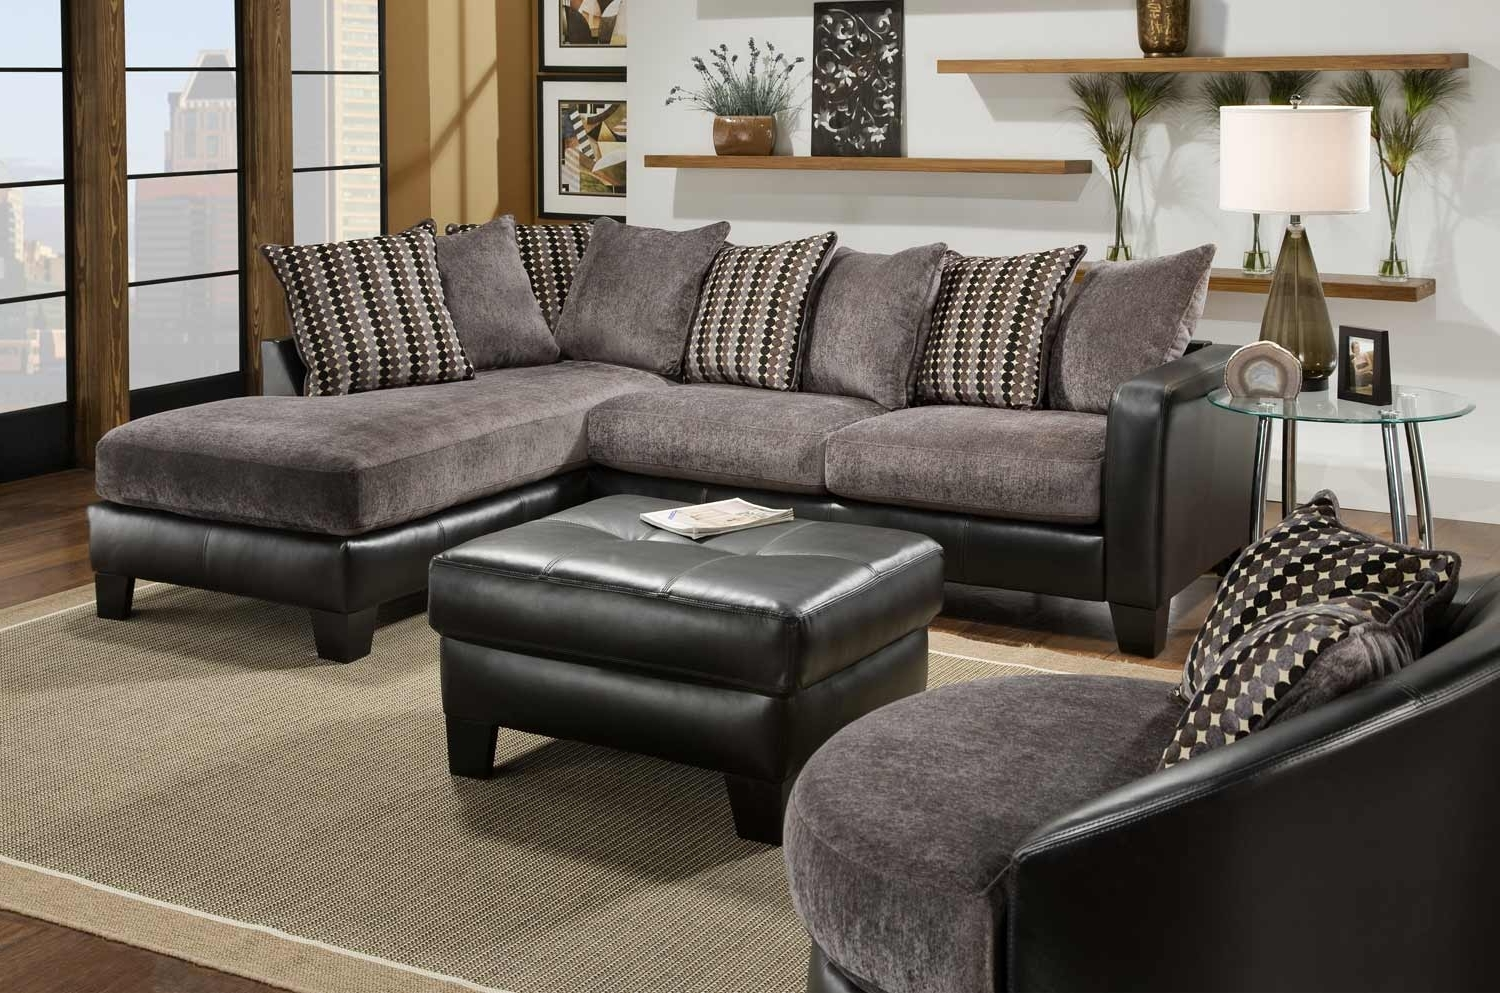 Most Recent Black Leather Sectionals With Ottoman Intended For Fascinating Picture Of Living Room Decoration Using L Shape (View 13 of 20)